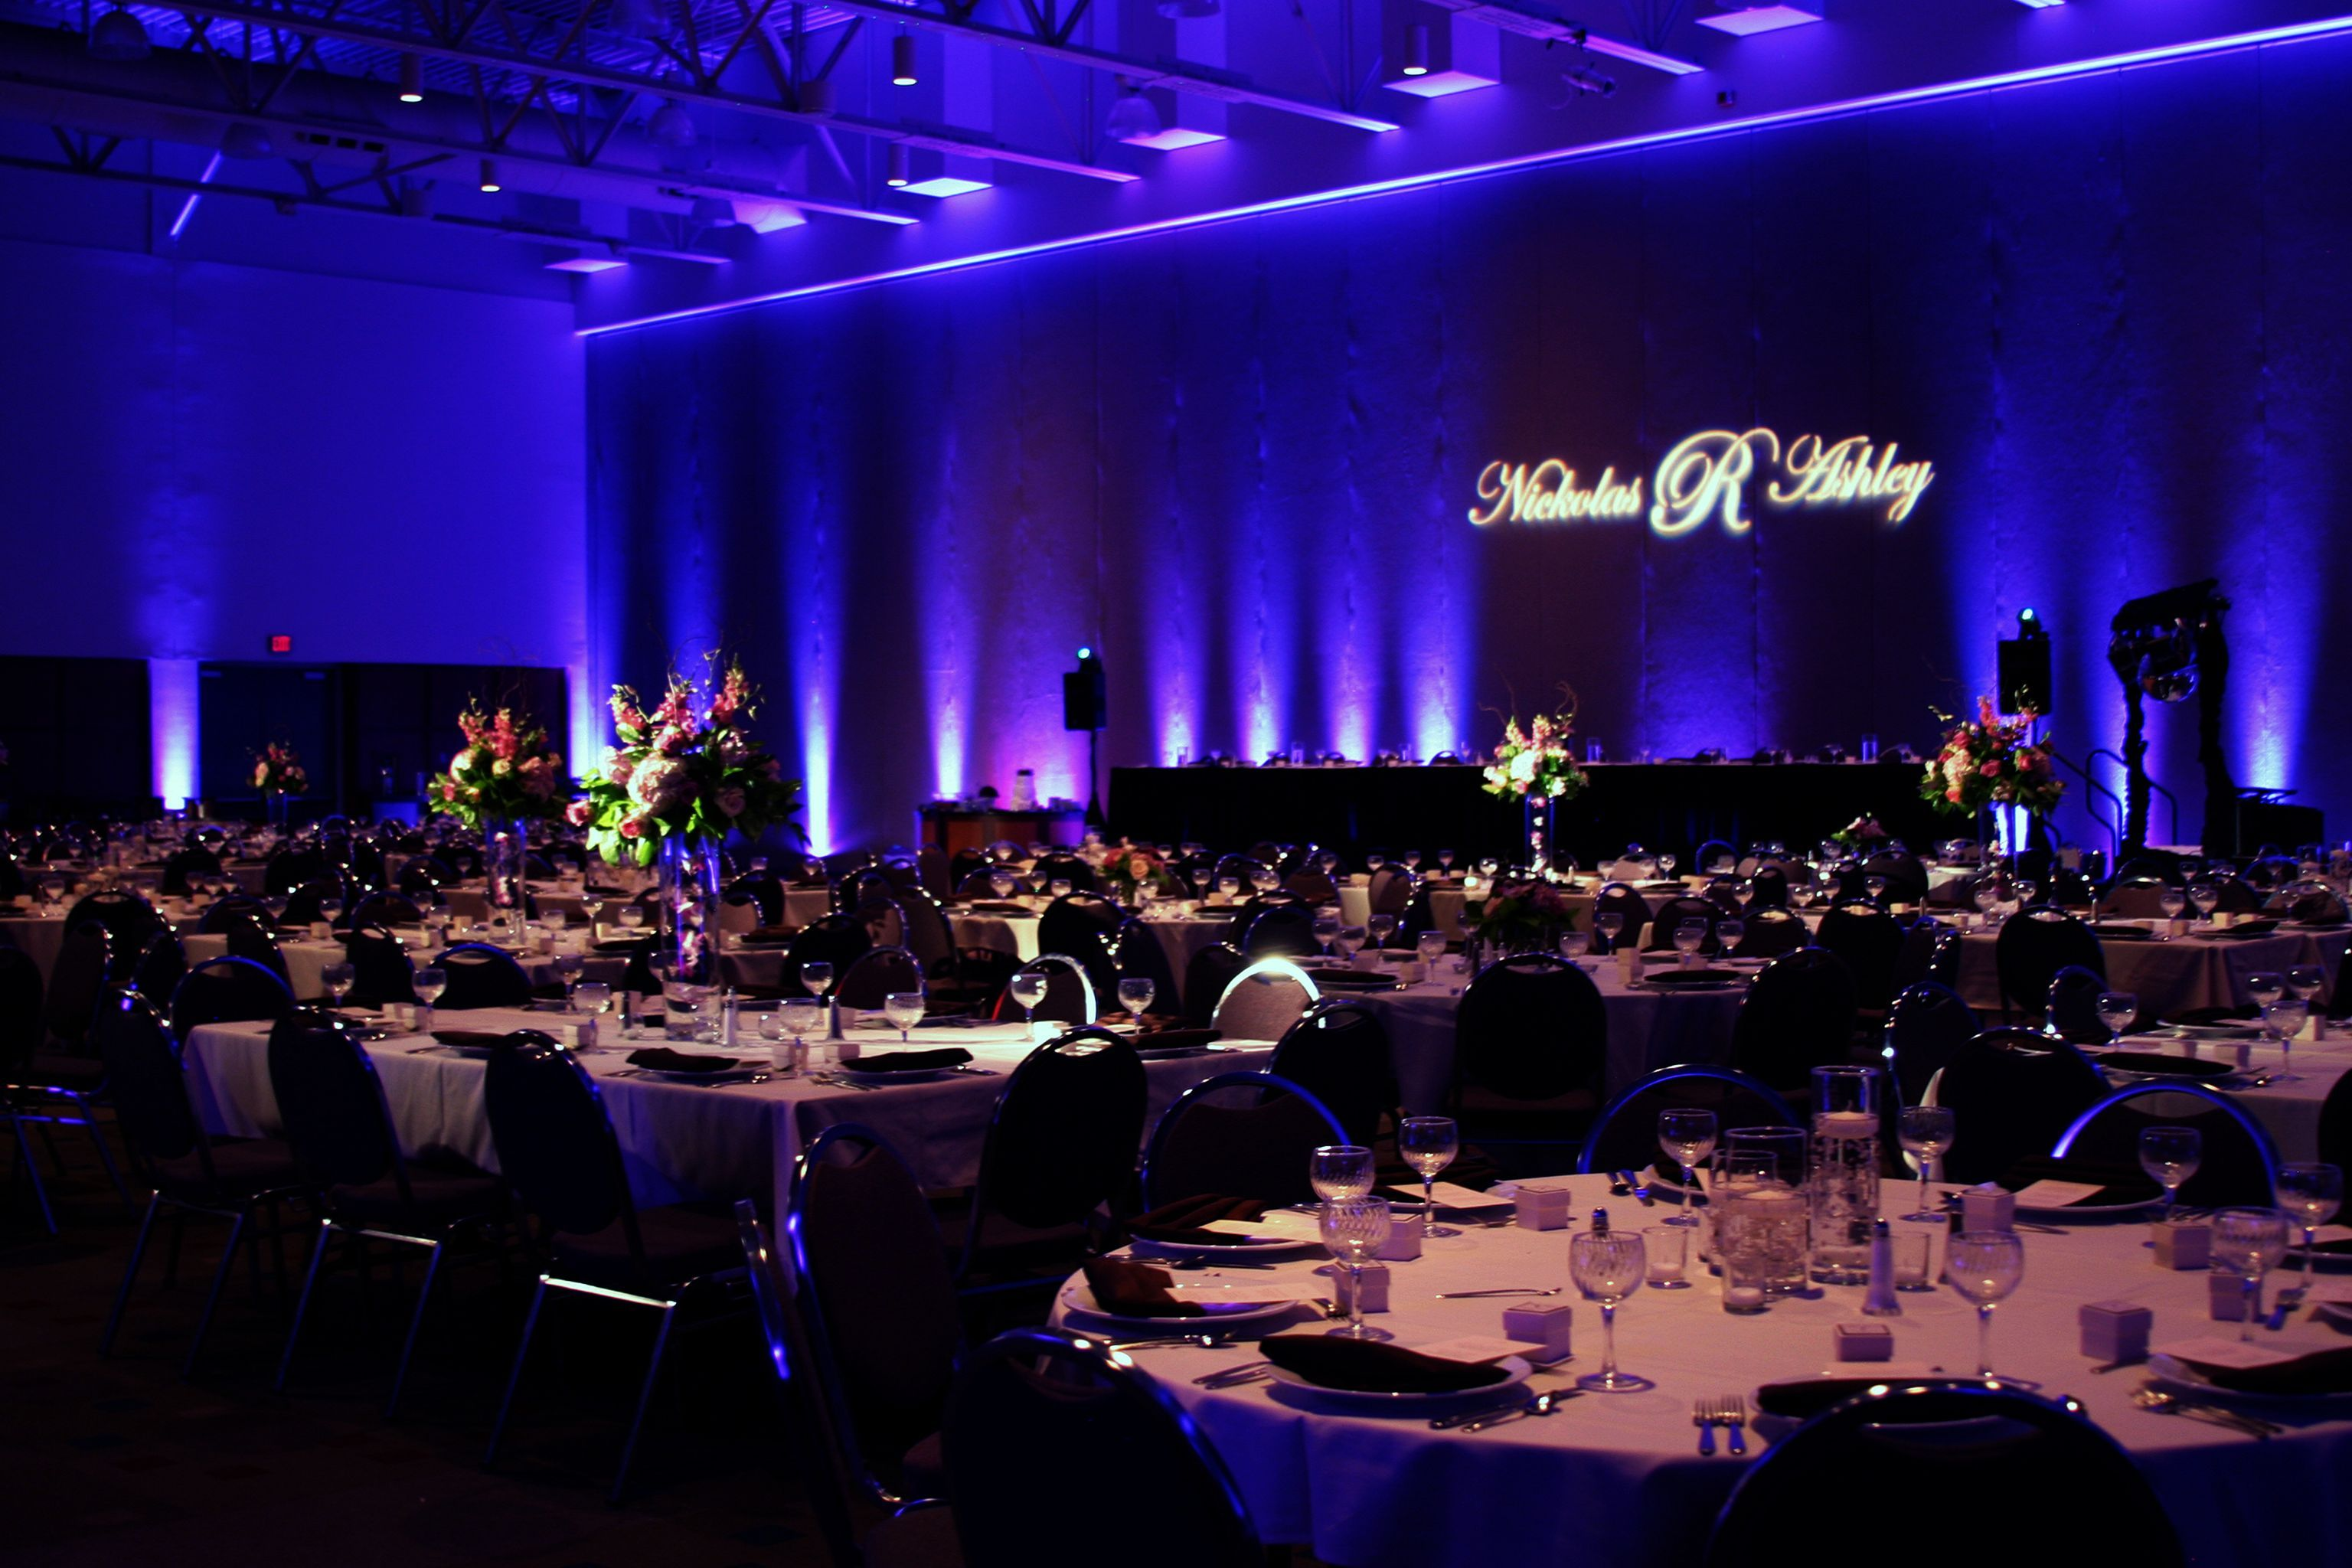 Wedding decoration ideas for hall   Awesome Wedding Reception Lighting Ideas  Wedding reception